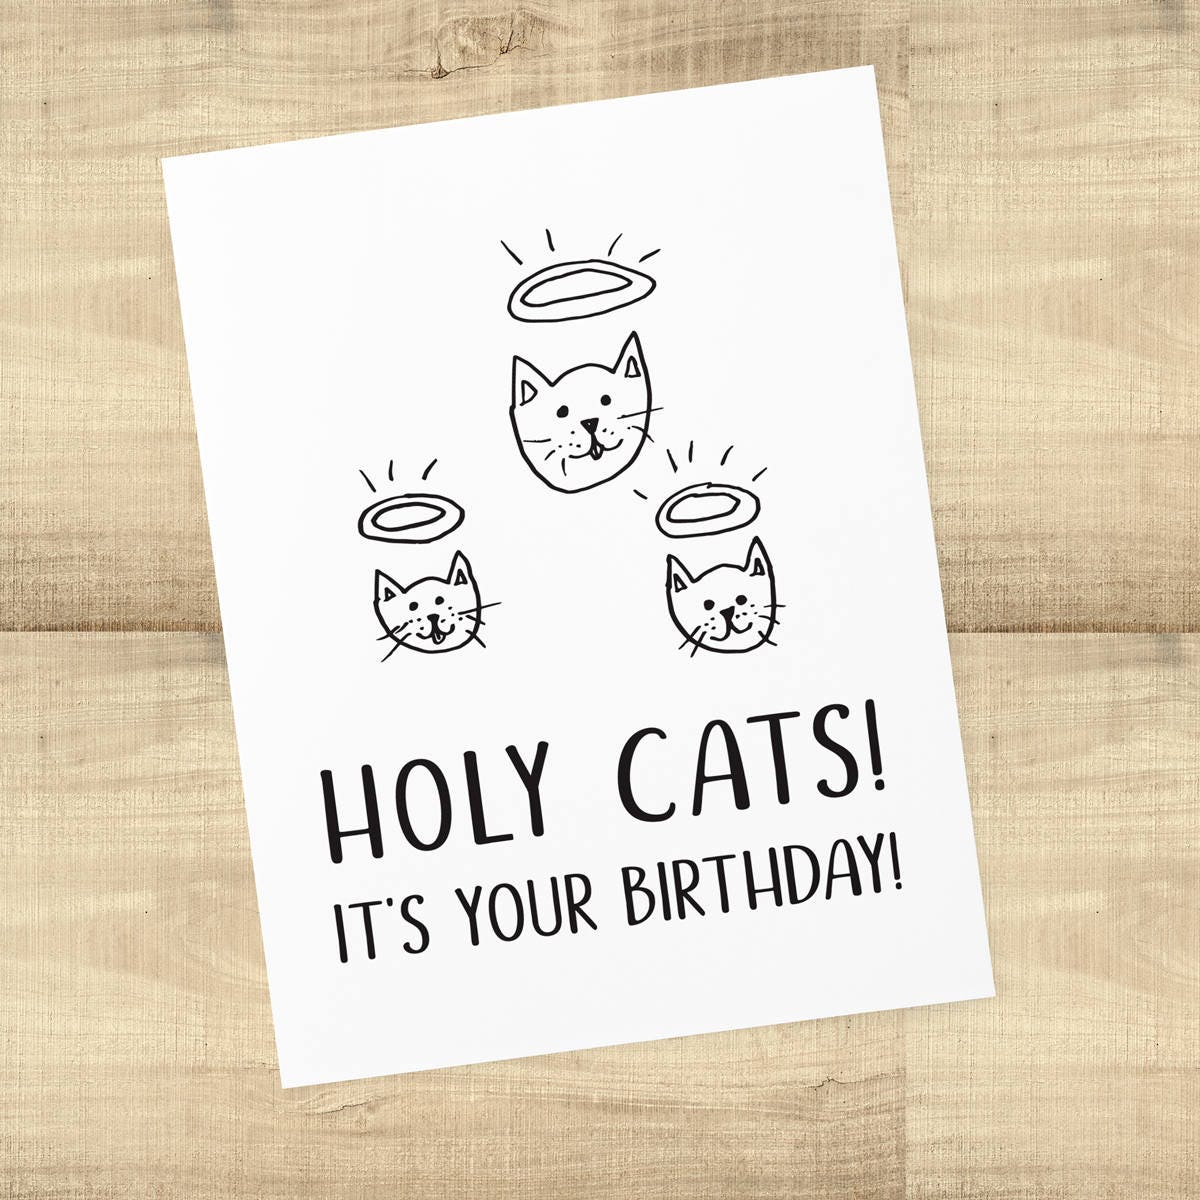 Holy Cats Its Your Birthday Card For Cat Lovers Blank Inside Envelope Included